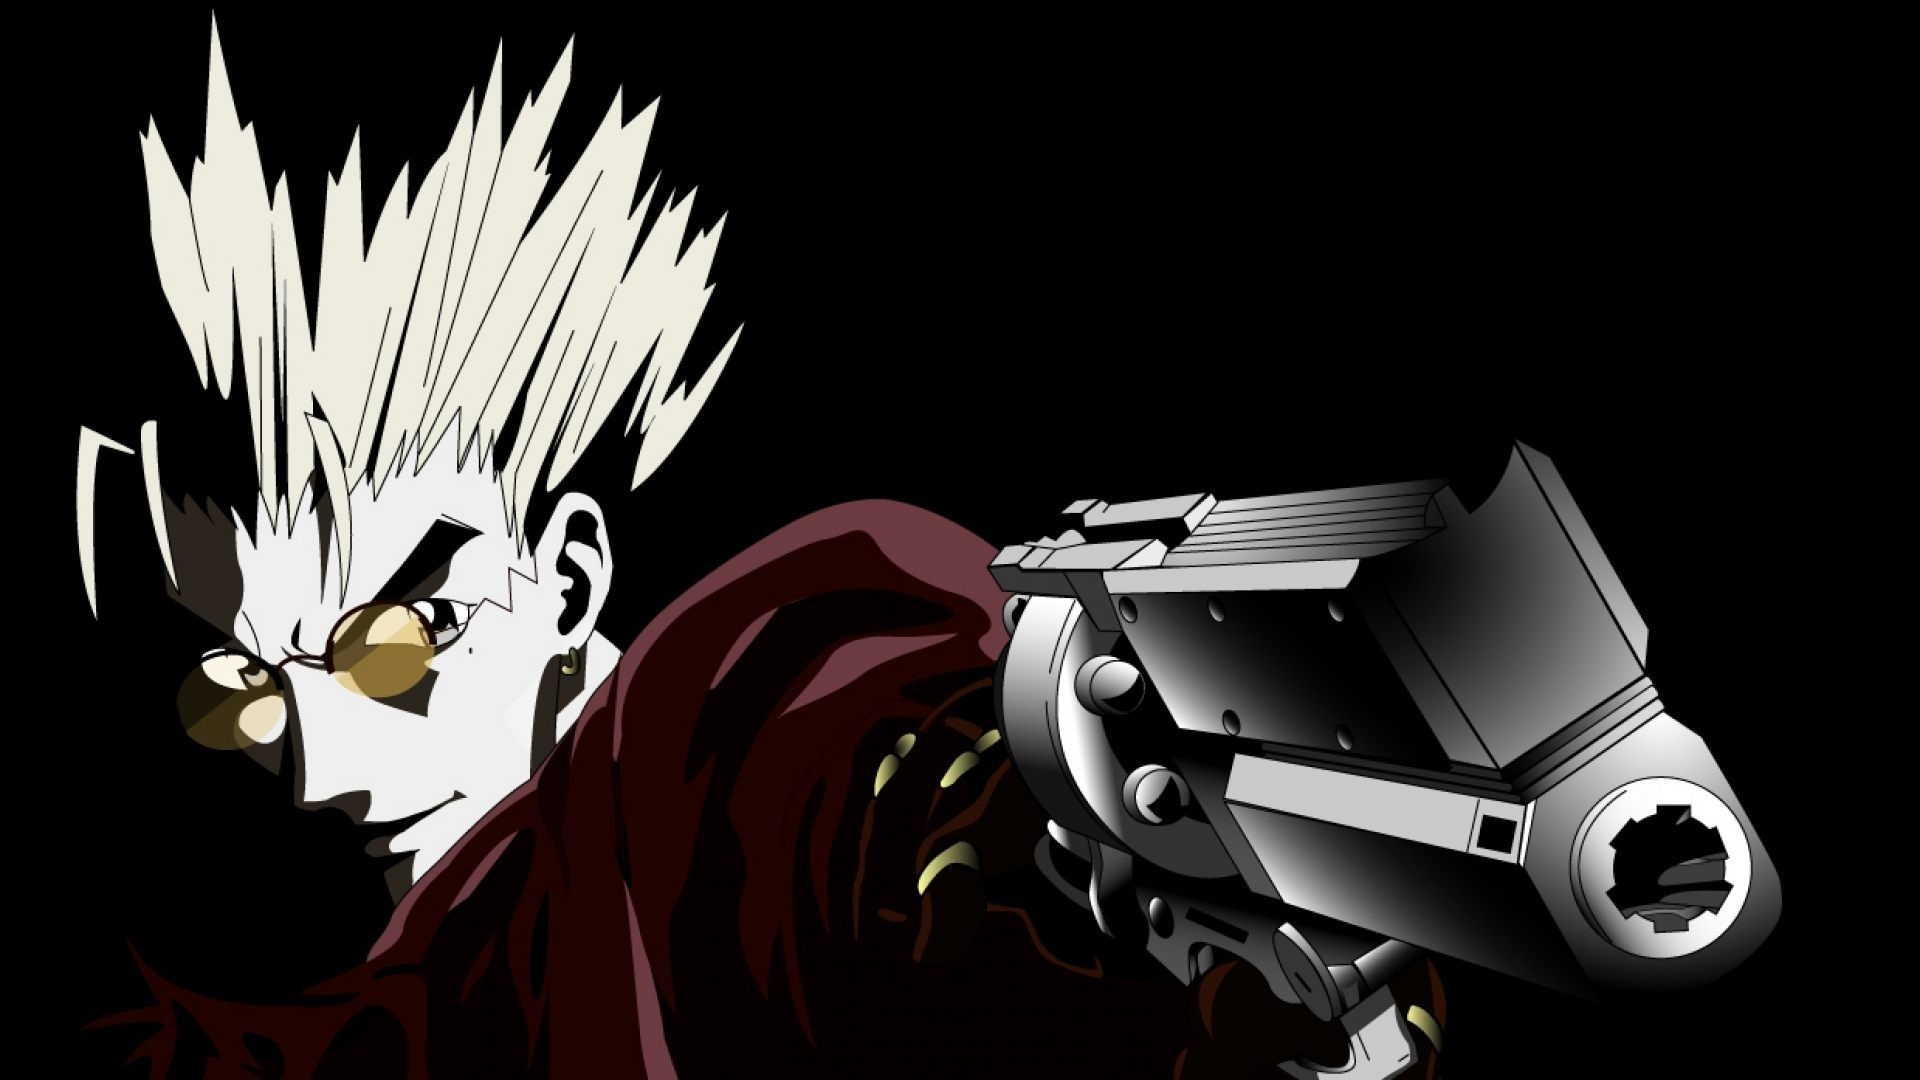 Res: 1920x1080, Trigun Wallpapers 2 - 1920 X 1080